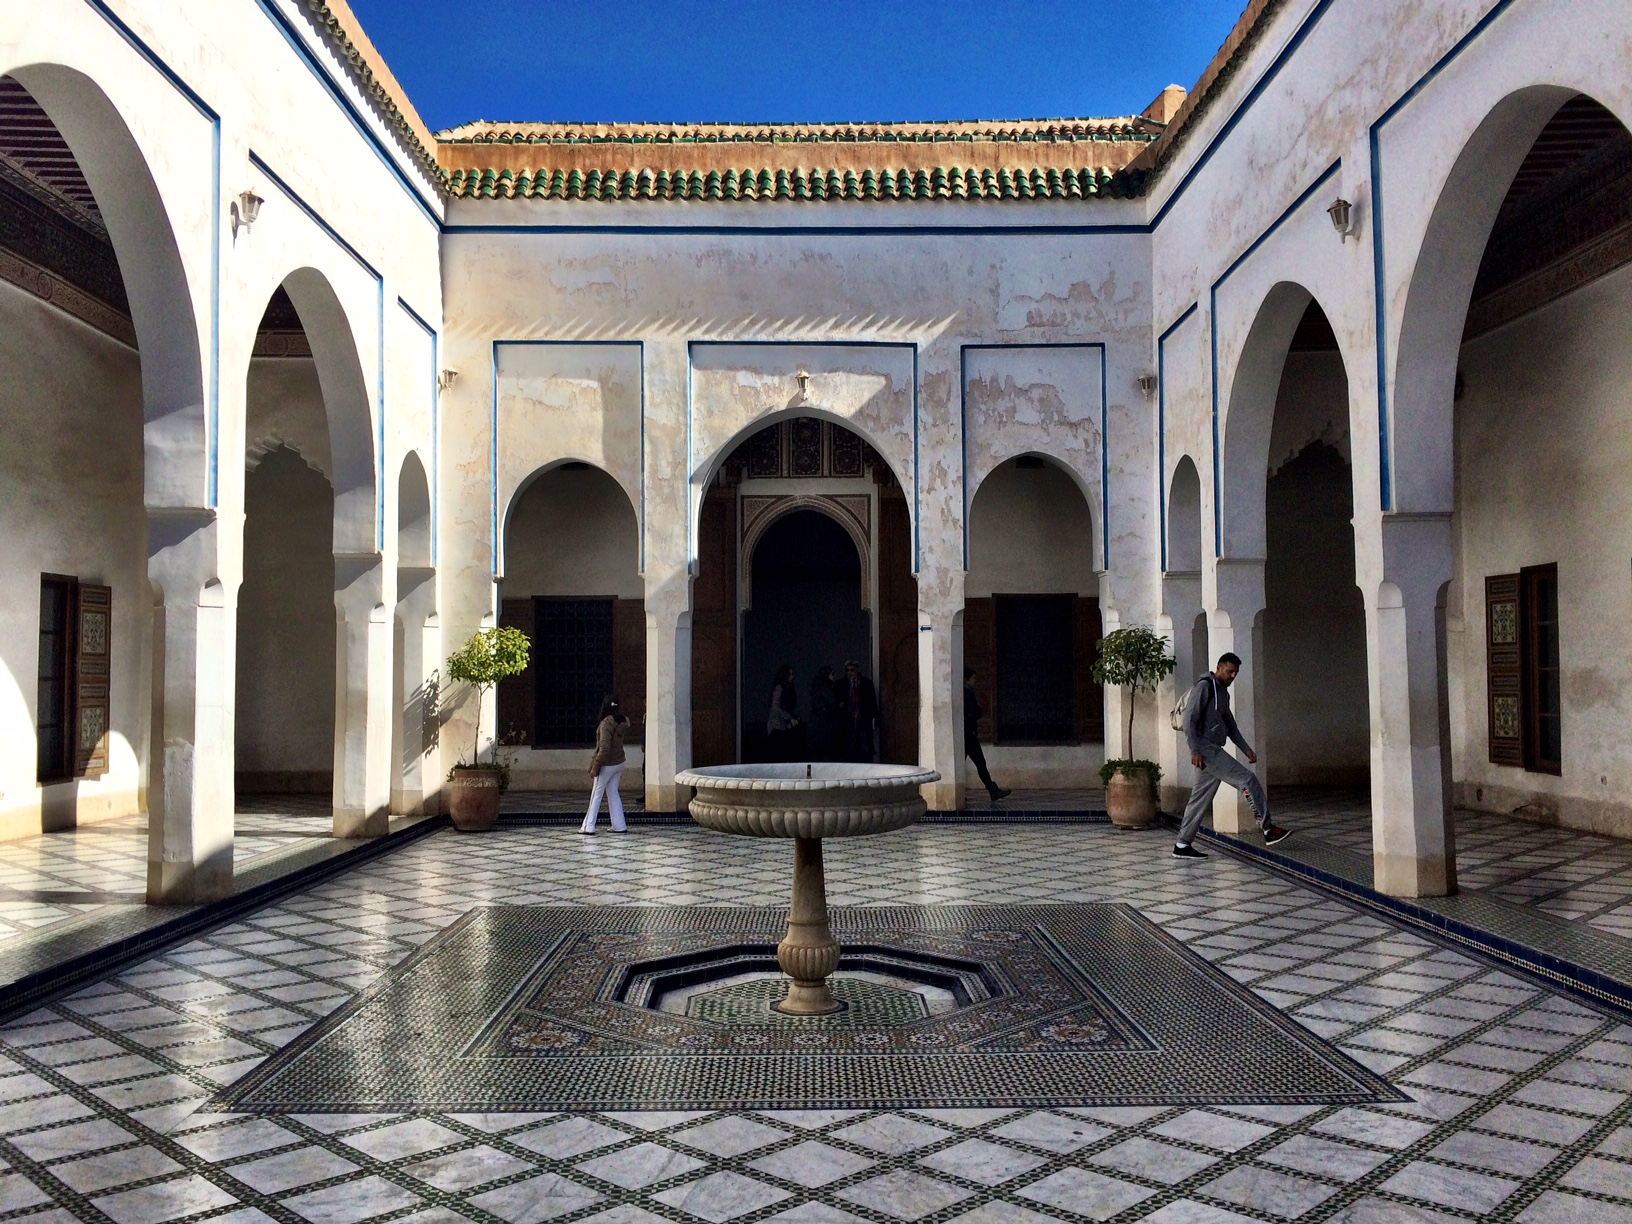 The Bahia Palace, Marrakech